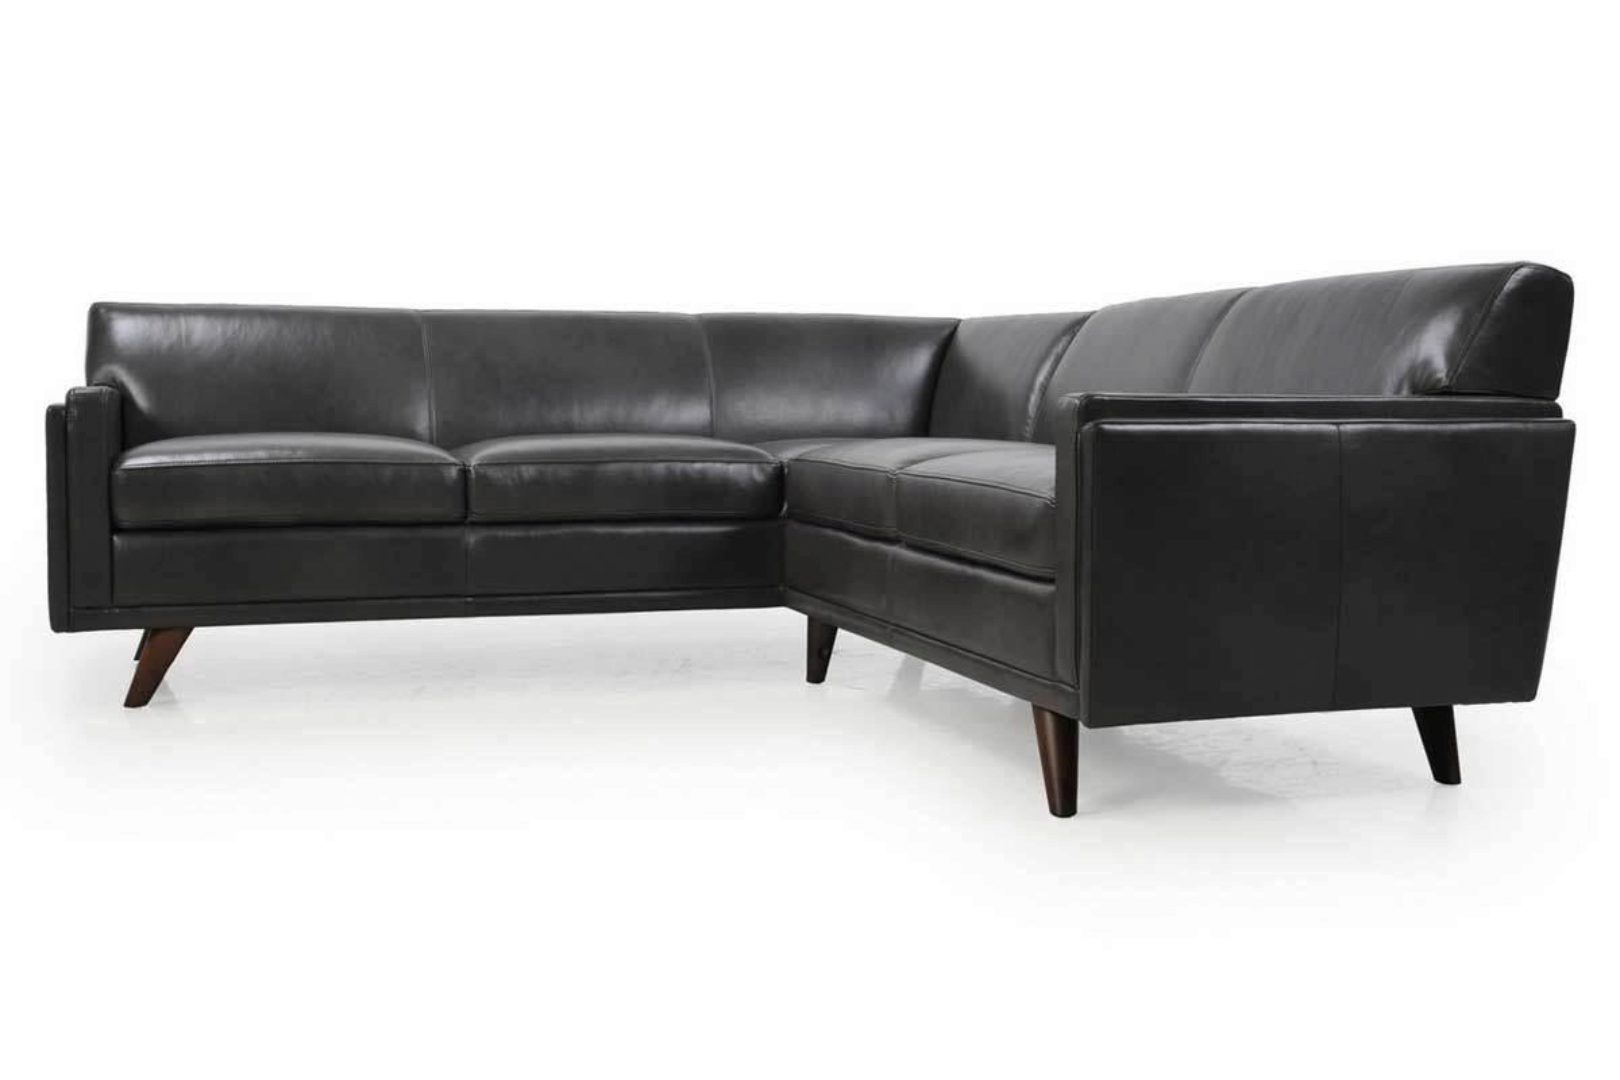 Image of: Moroni Milo 361 Contemporary Charcoal Full Top Grain Leather Sectional Sofa 361scbs1171